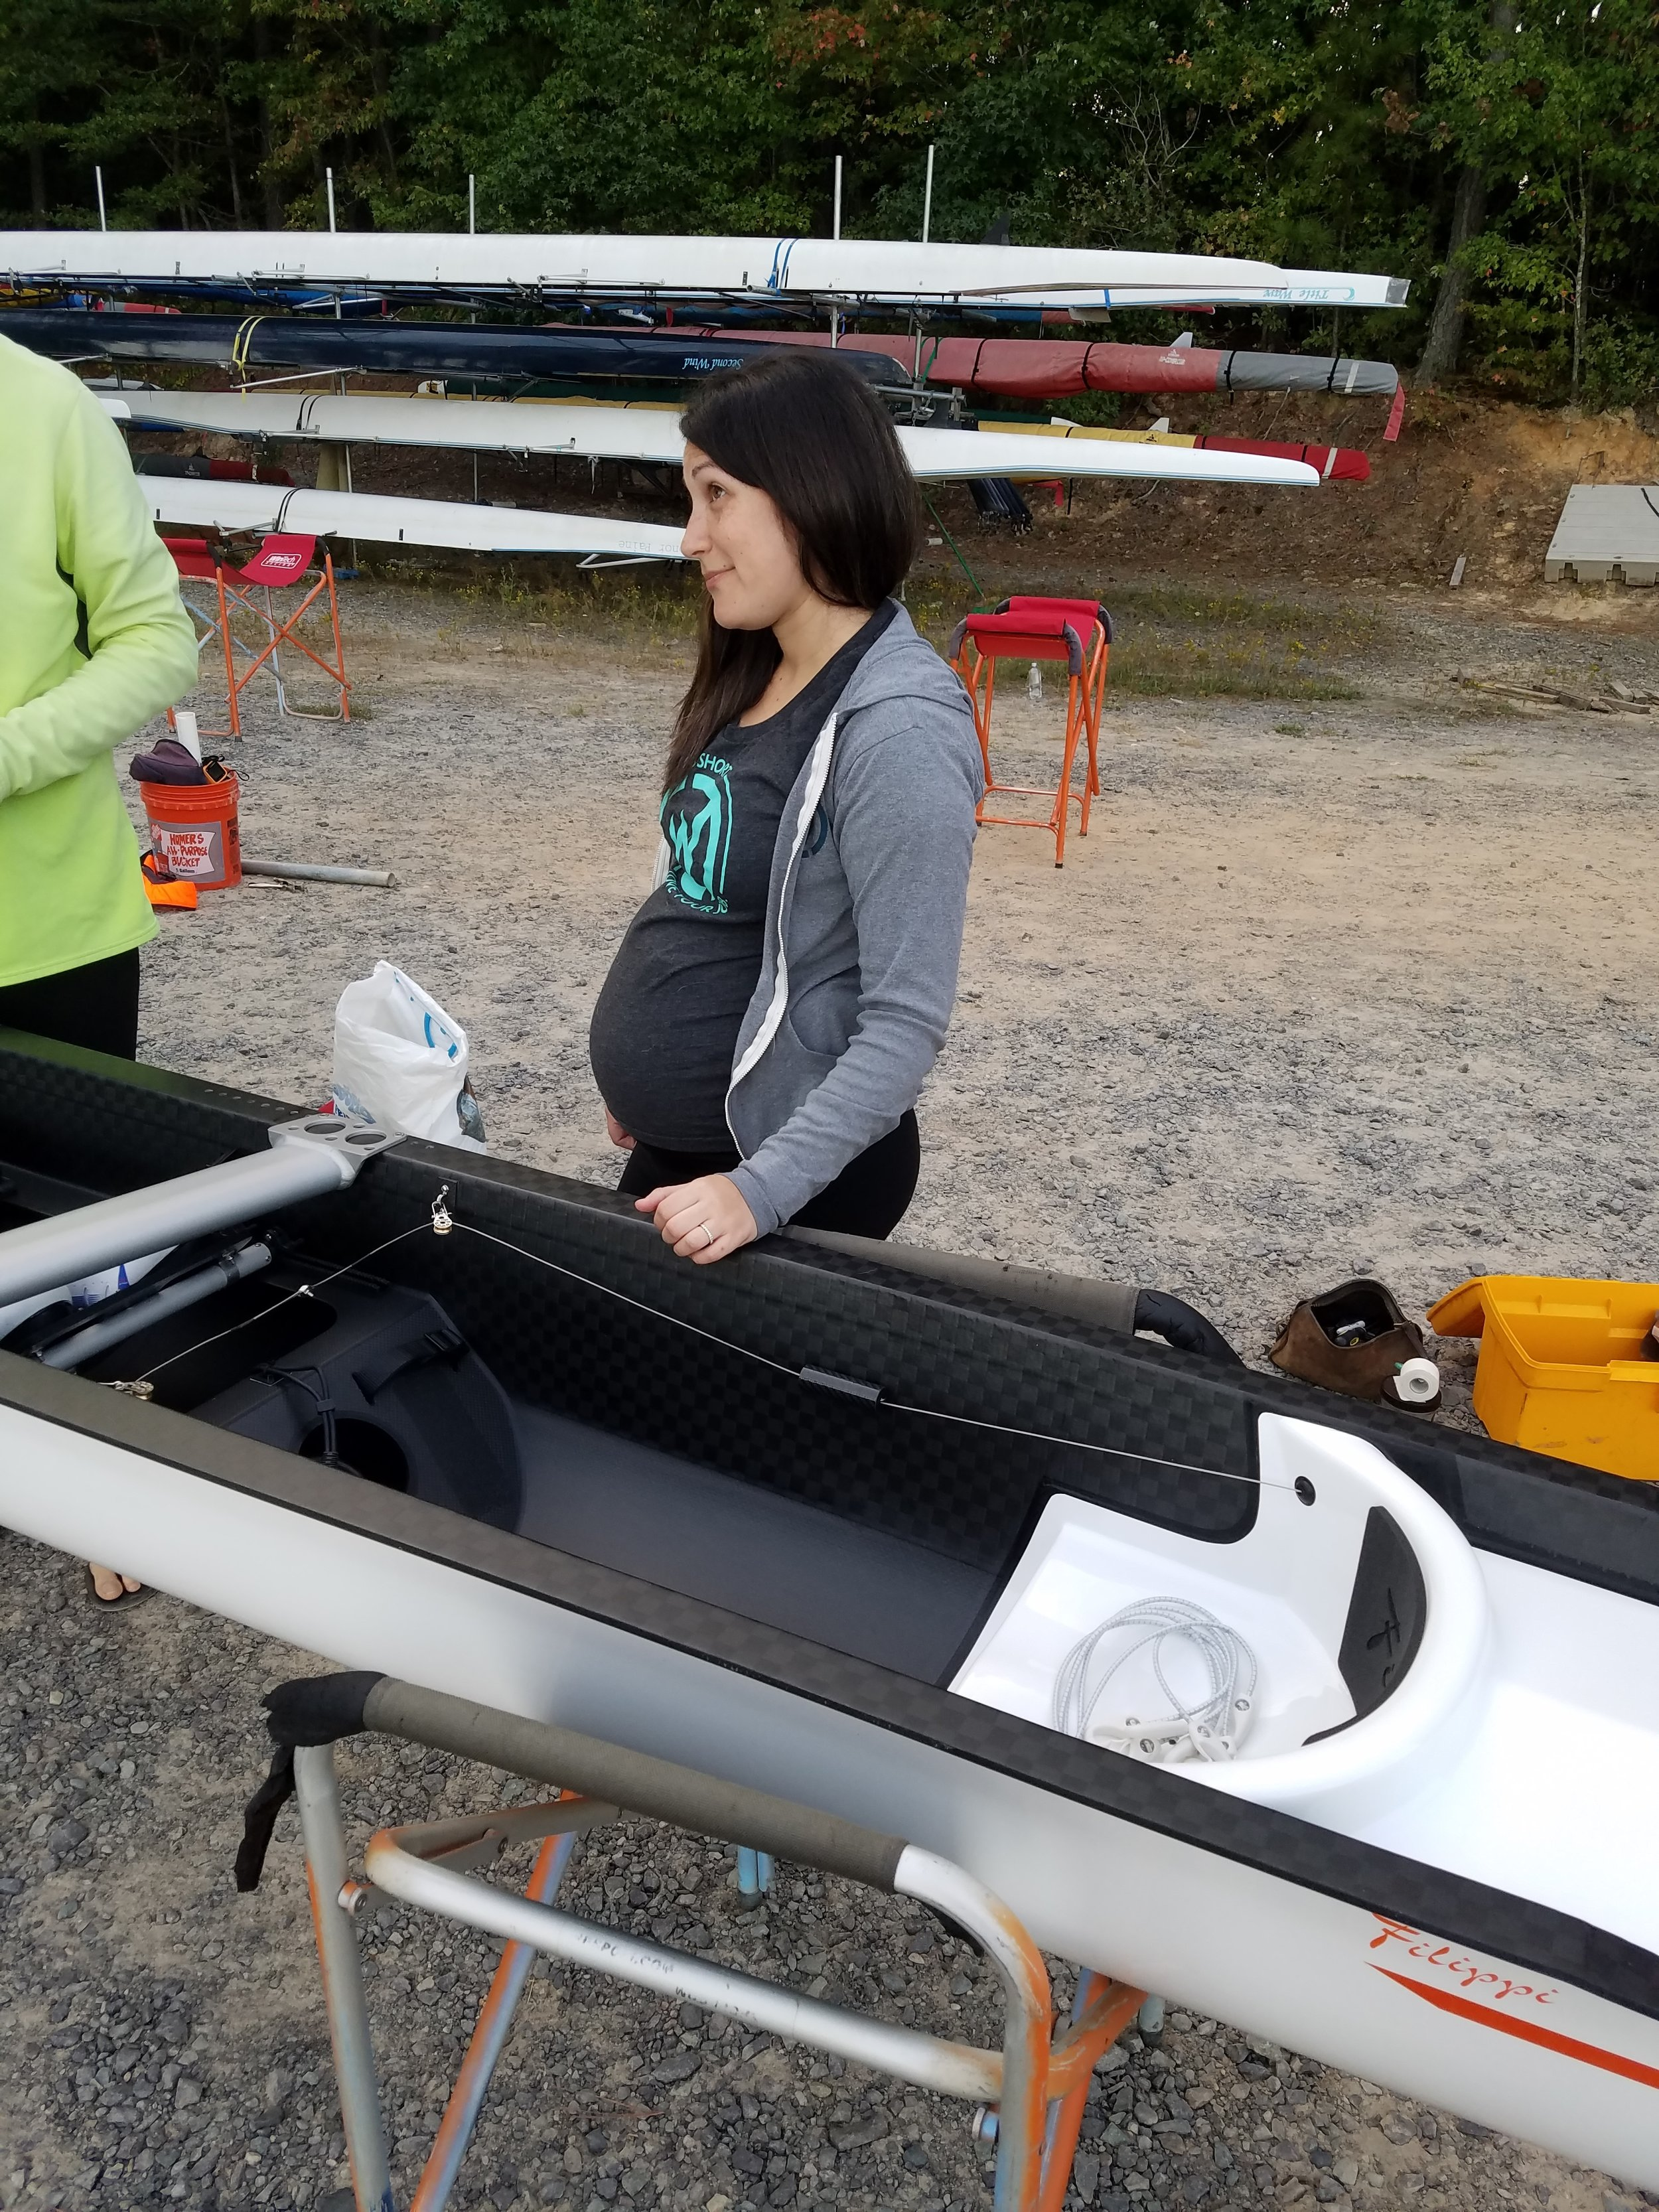 Our cox Kylie with the future son inspecting the coxswain seat in our brand new Filippi 4+